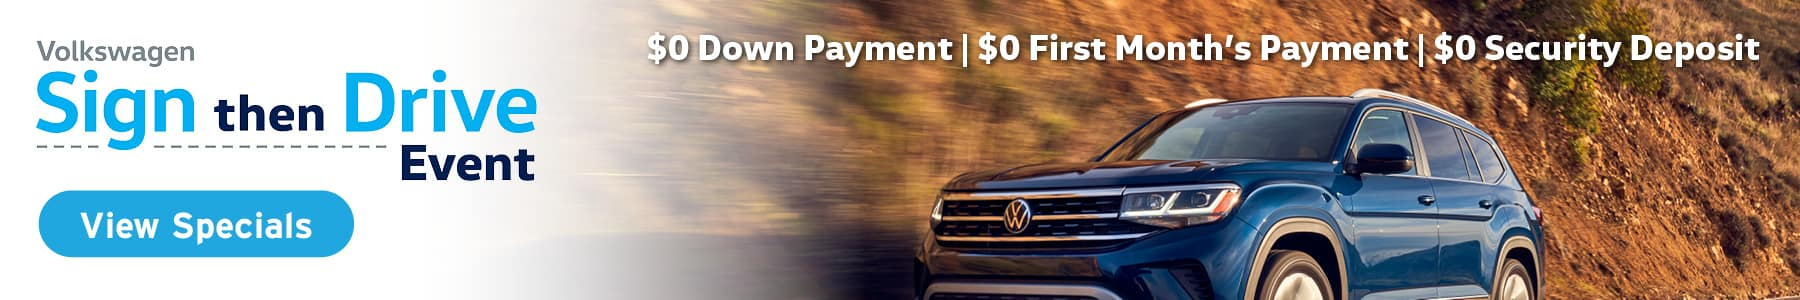 Volkswagen Sign then drive event. $0 Down Payment, $0 First Month's Payment, $0 Security Deposit. Click or tap here to visit our inventory.